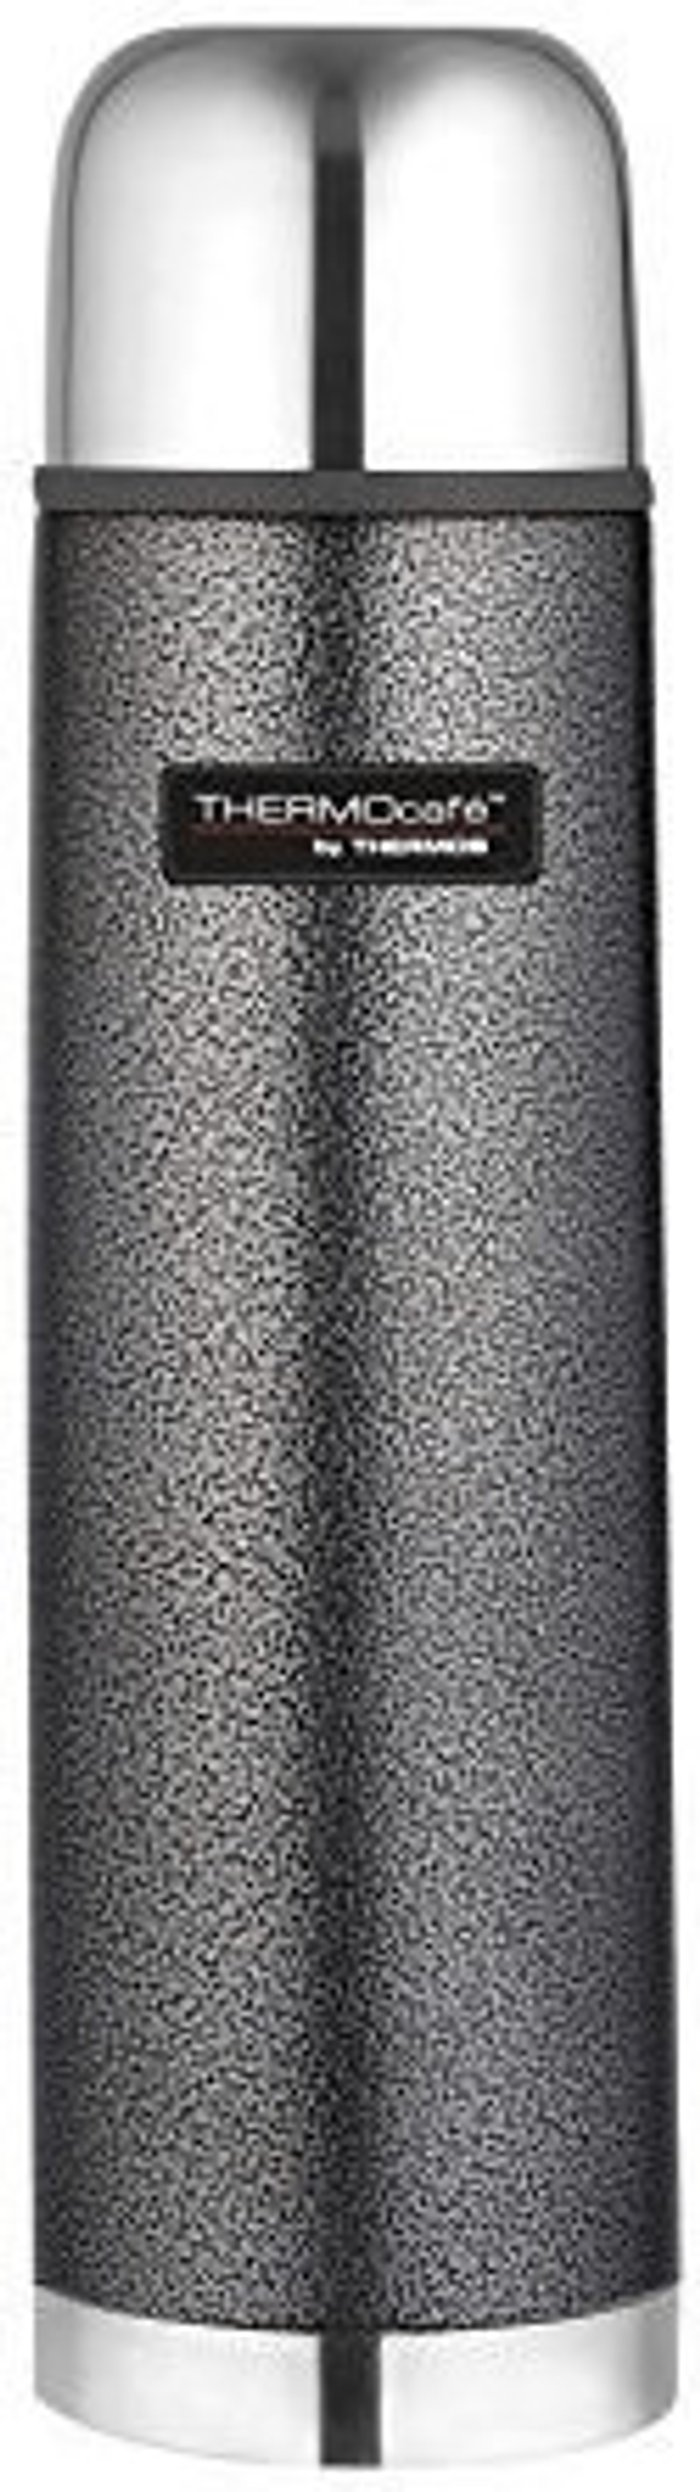 Thermos Thermos ThermoCafe stainless steel bottle Hammertone gray 1,0 l